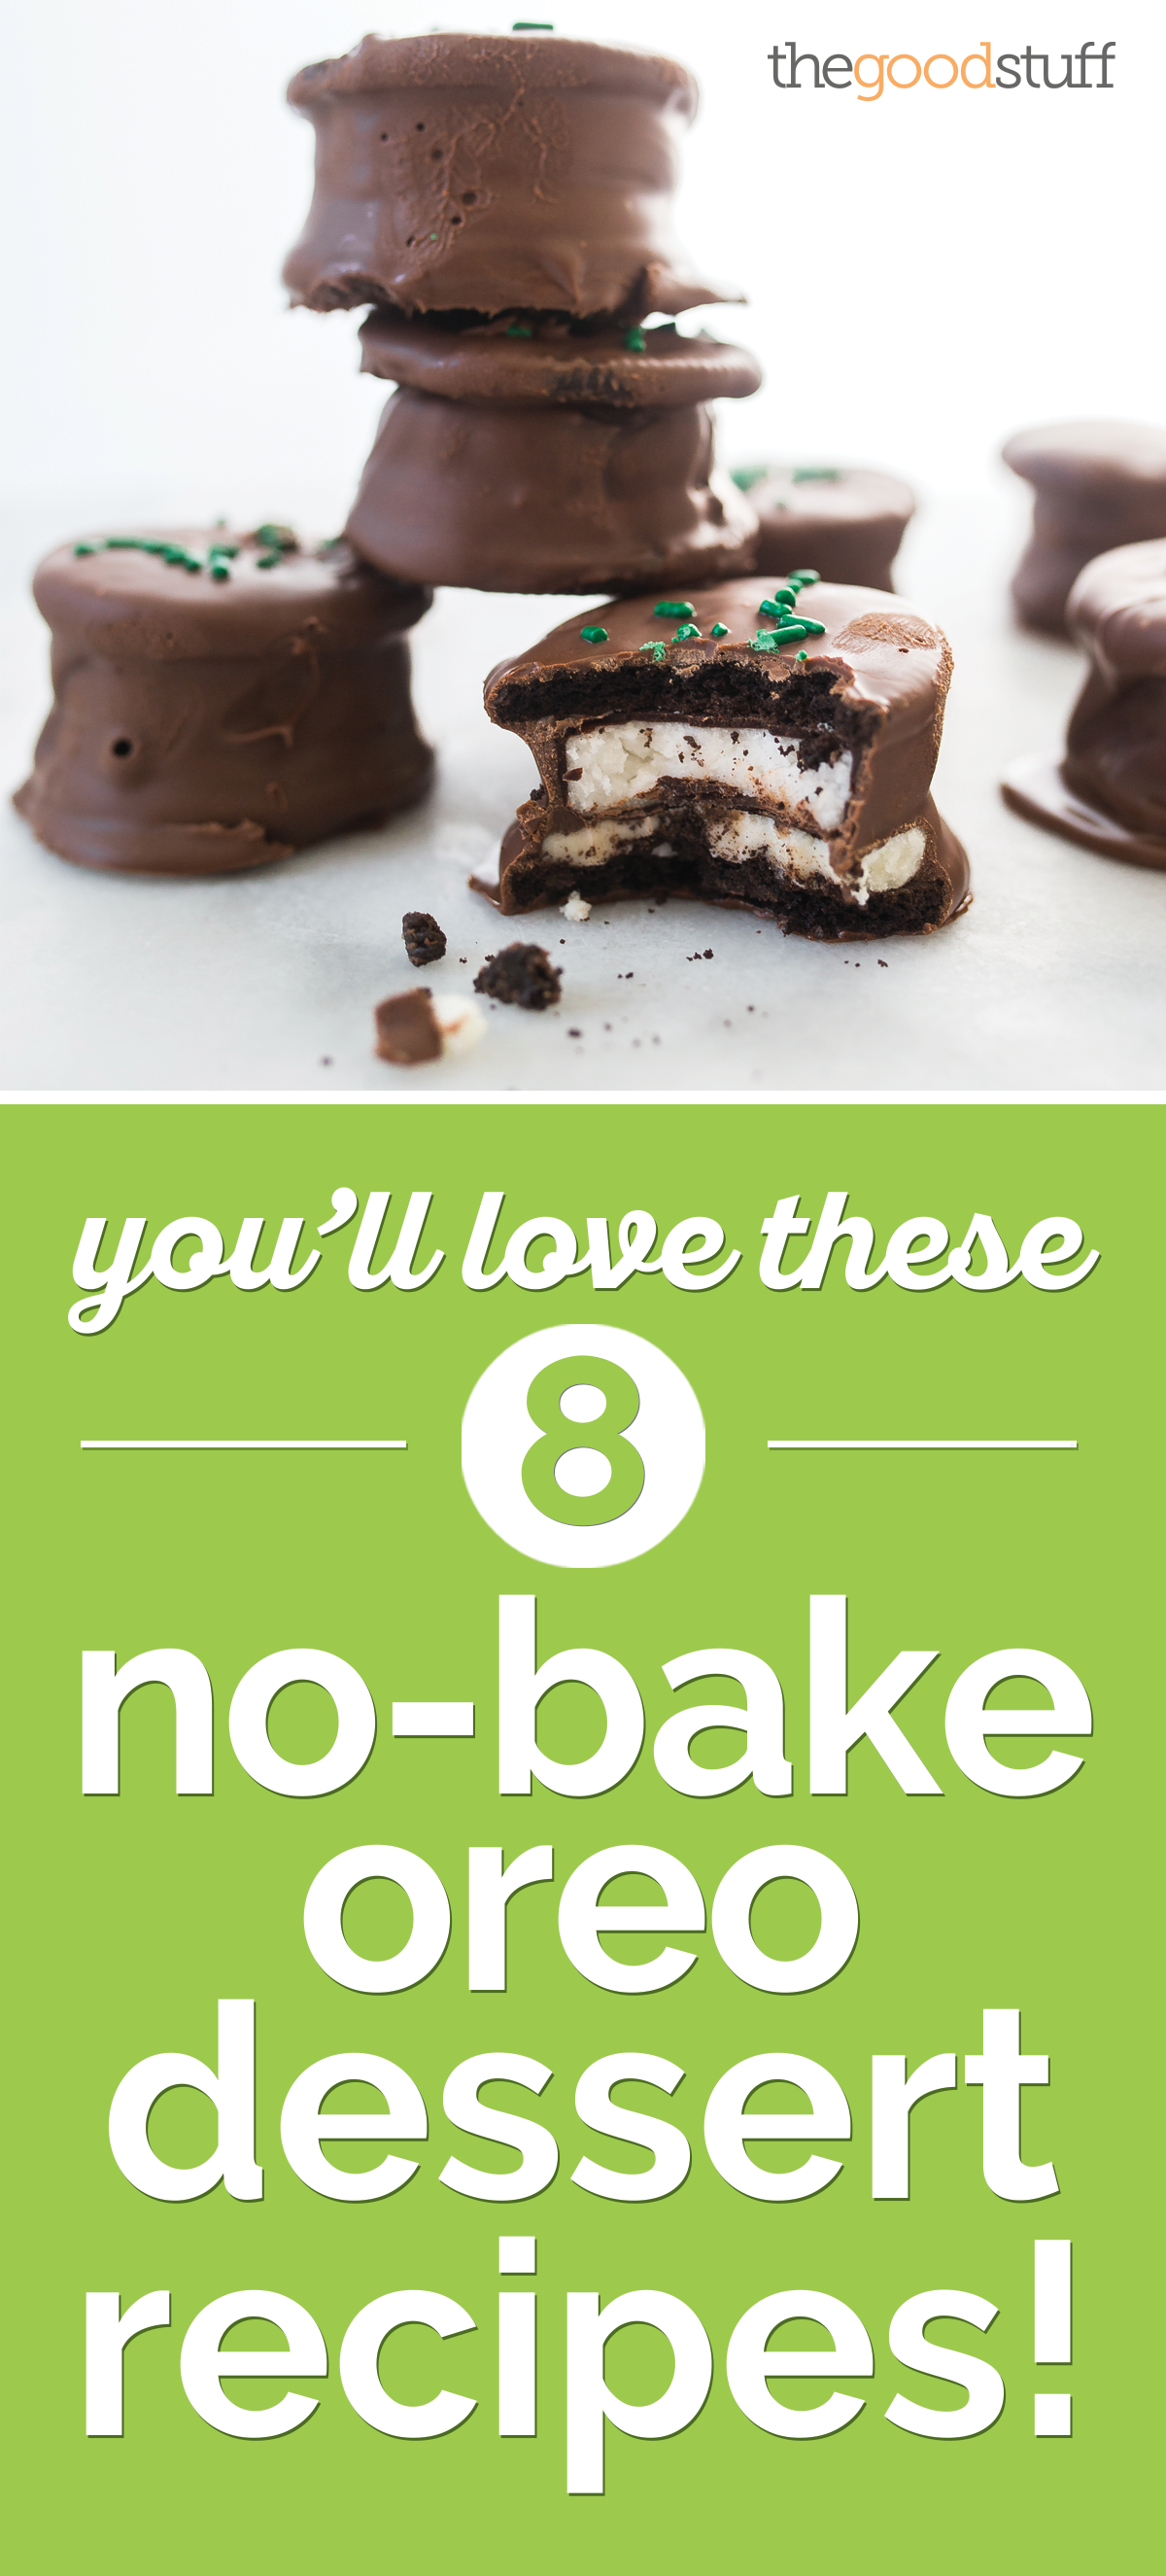 Youll Love These 8 NoBake Oreo Dessert Recipes thegoodstuff